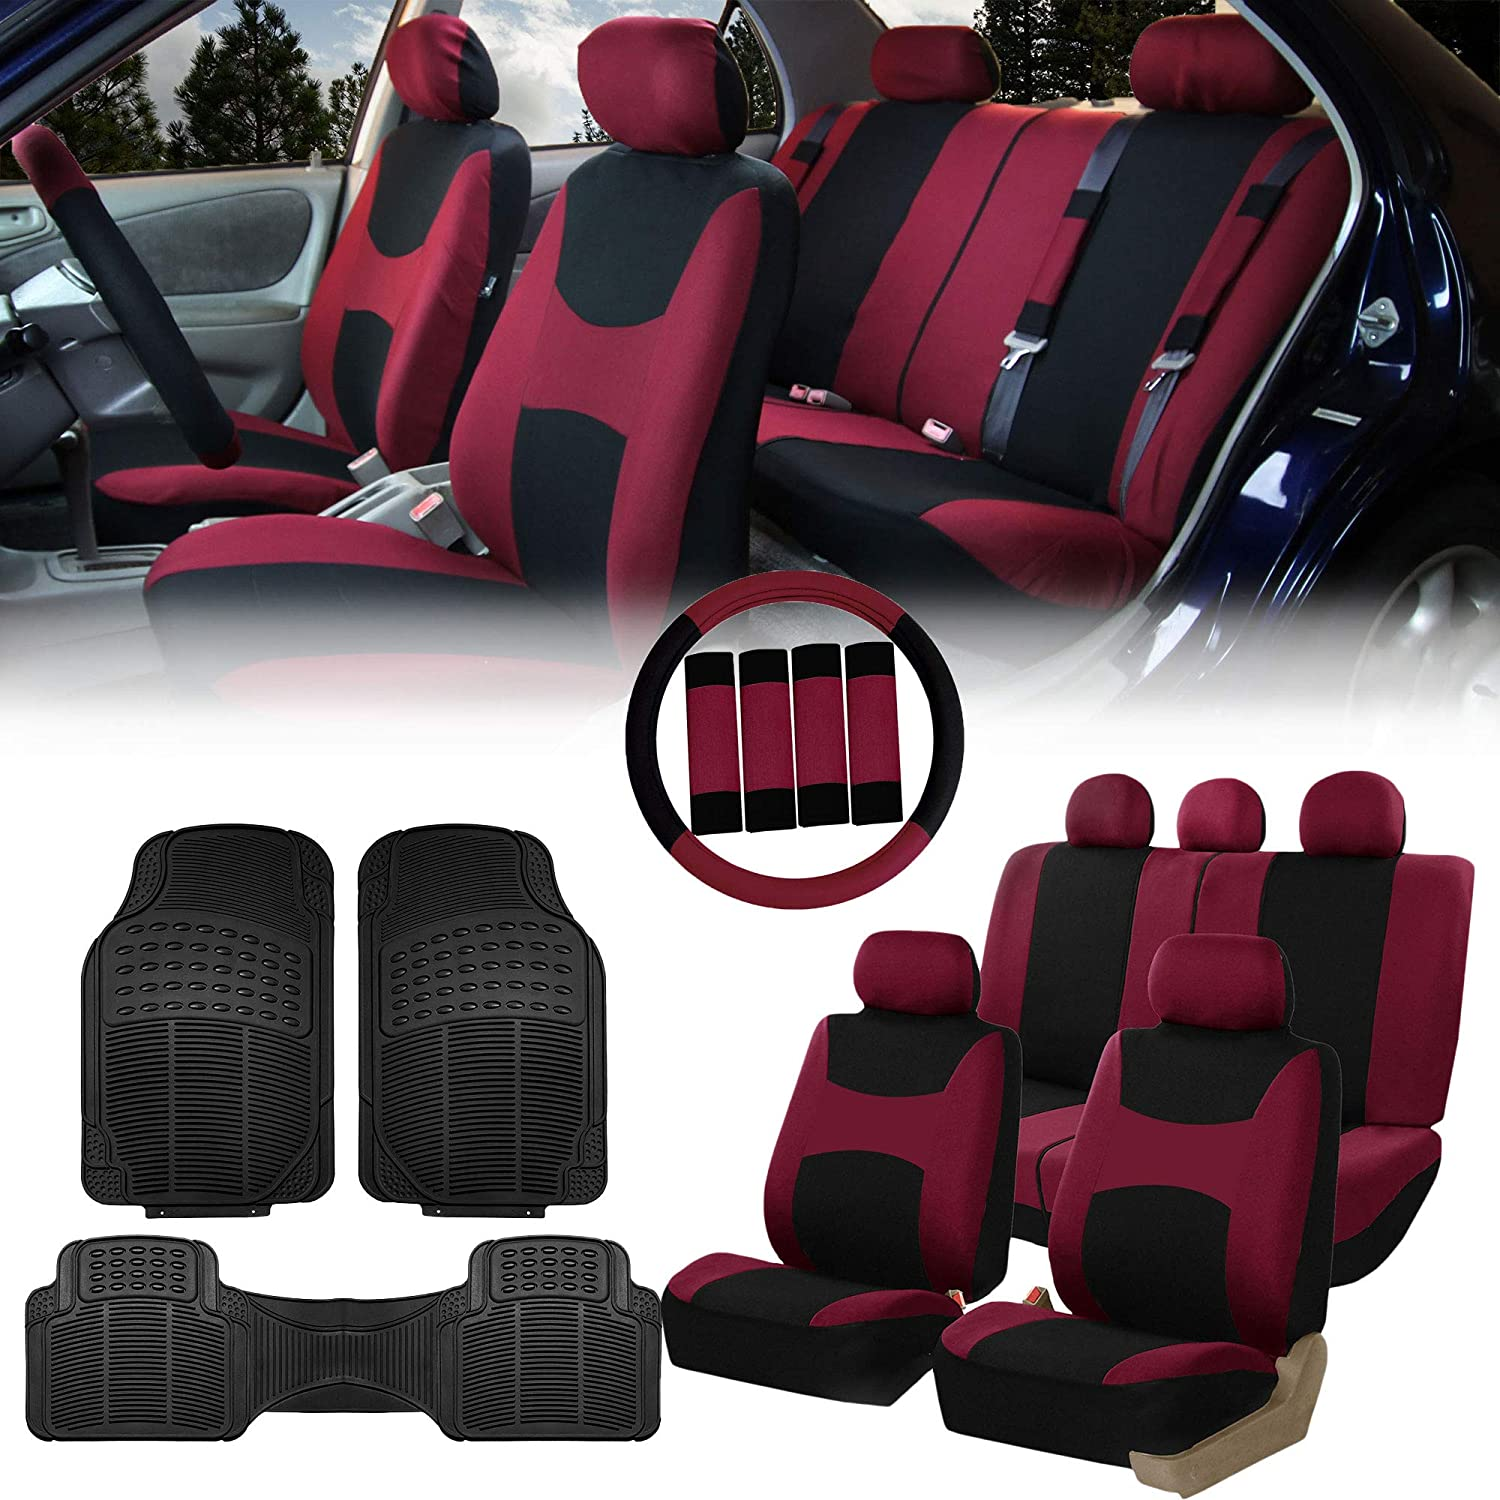 Truck Airbag /& Split Ready Solid Black Combo Set: Steering Wheel Cover SUV Seat Belt Pads and F11306 Vinyl Floor Mats-Fit Most Car FH Group FH-FB030115 Light /& Breezy Cloth Seat Covers or Van